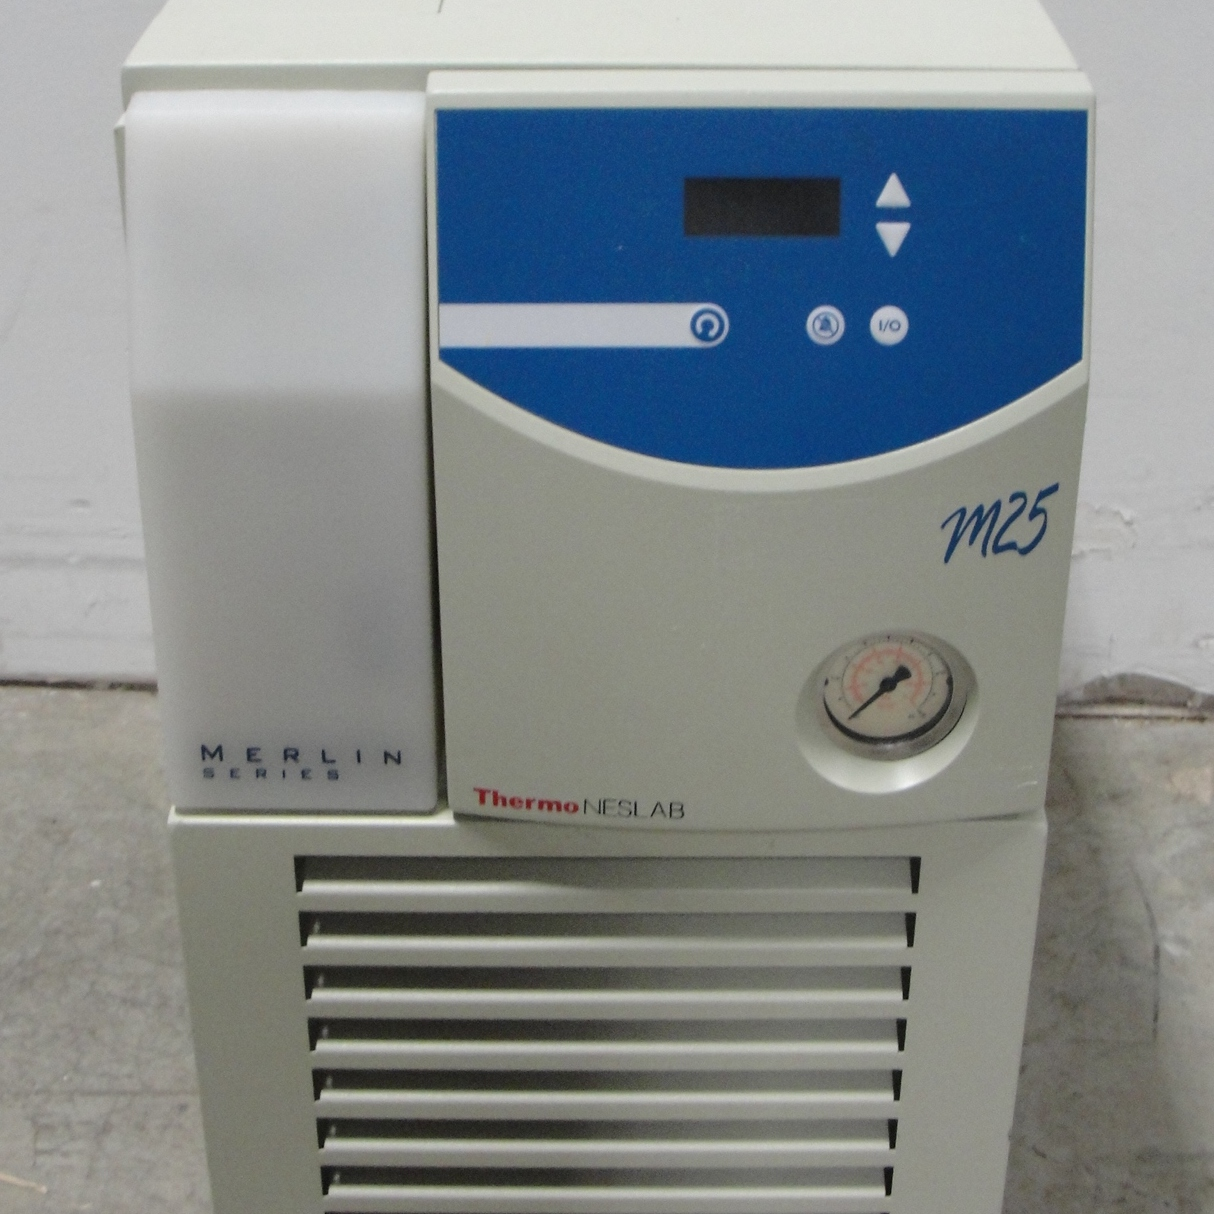 Thermo/NesLab Merlin M25 Recirculating Chiller Image